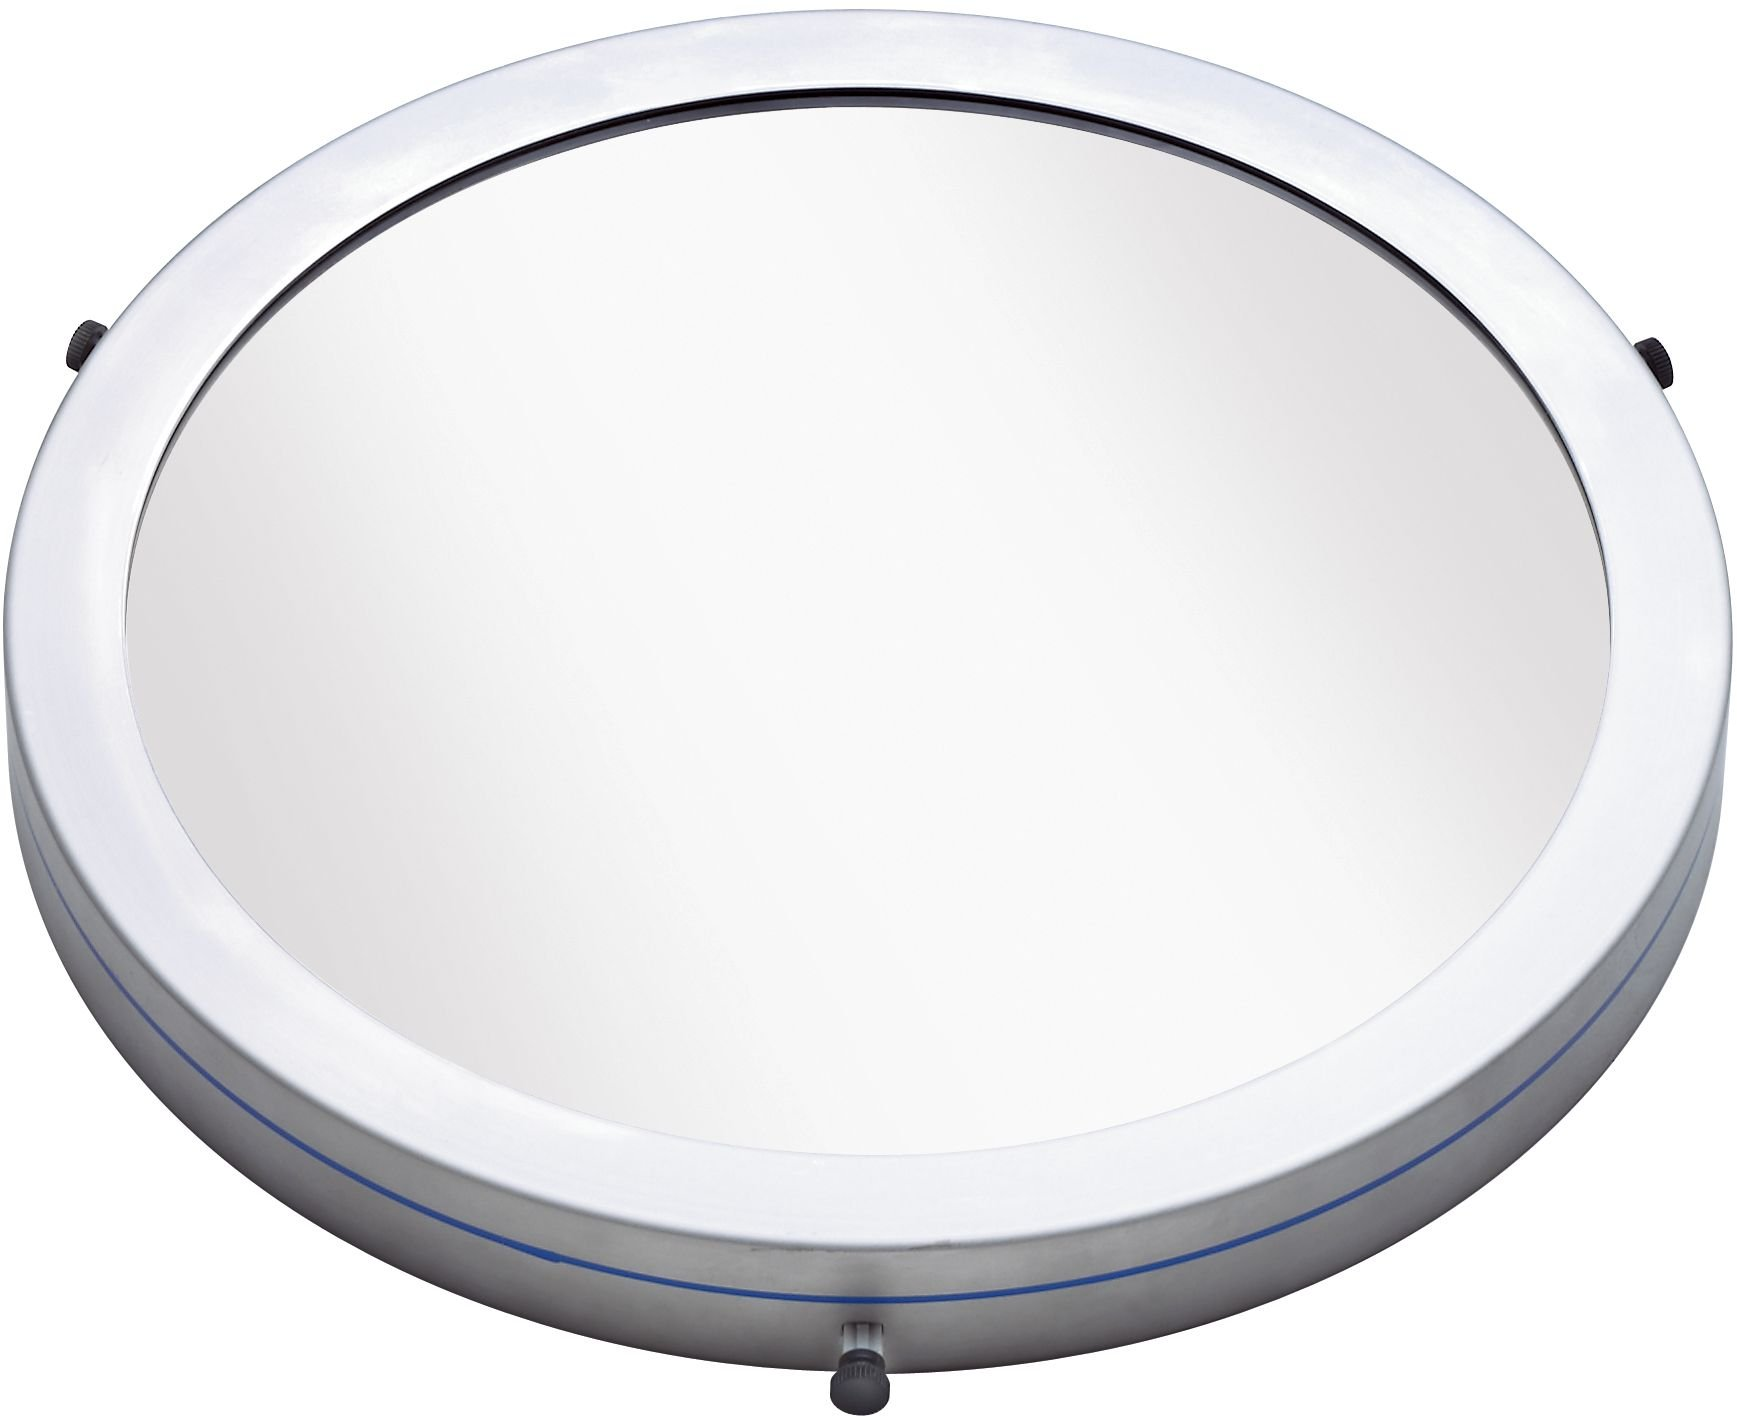 Orion 7745 3.68-Inch ID Full Aperture Solar Filter